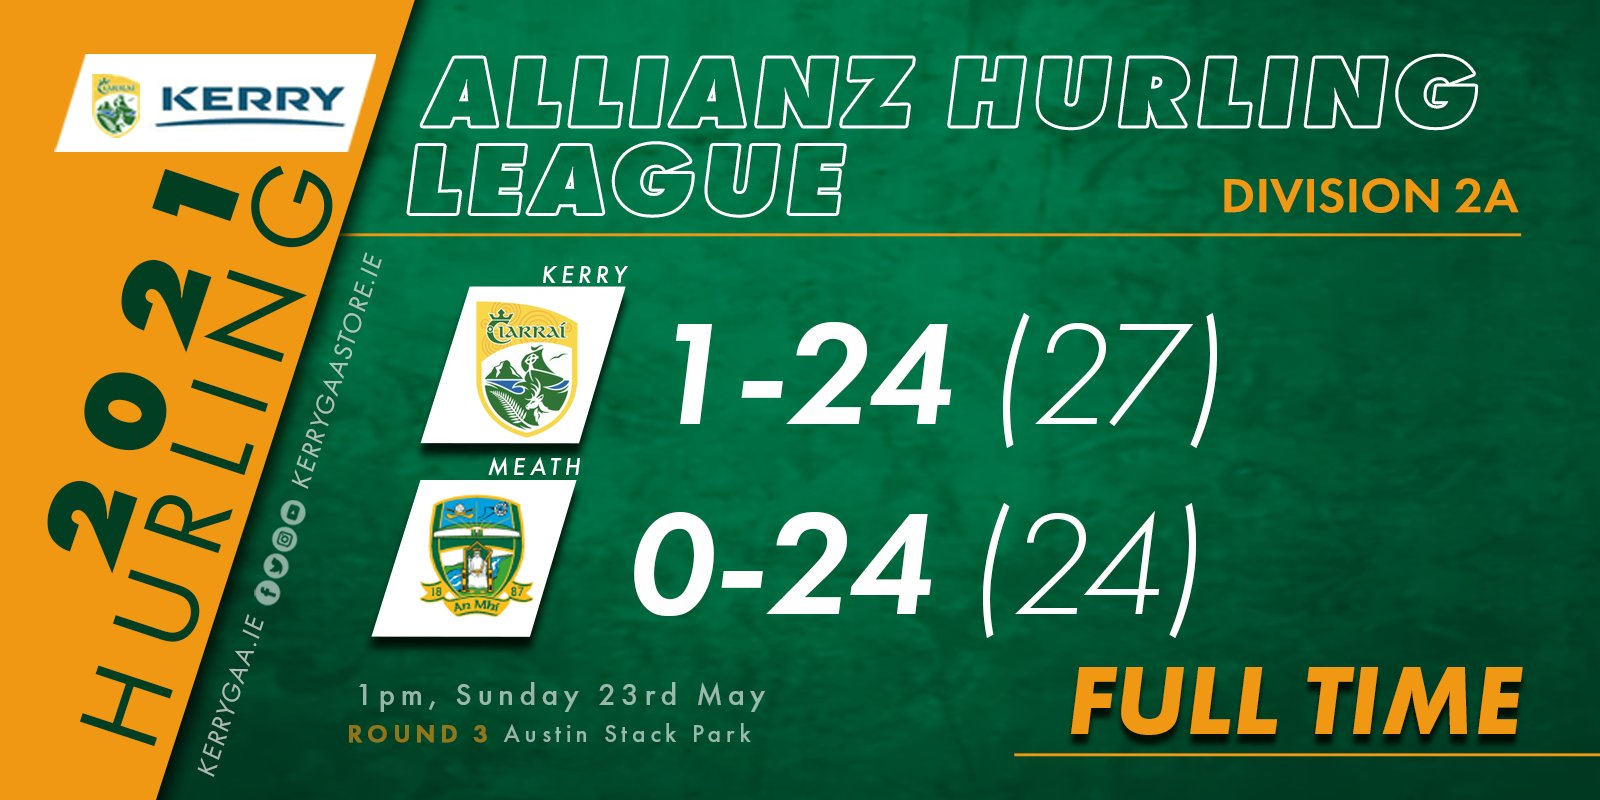 A win for Kerry over Meath in Allianz Hurling League